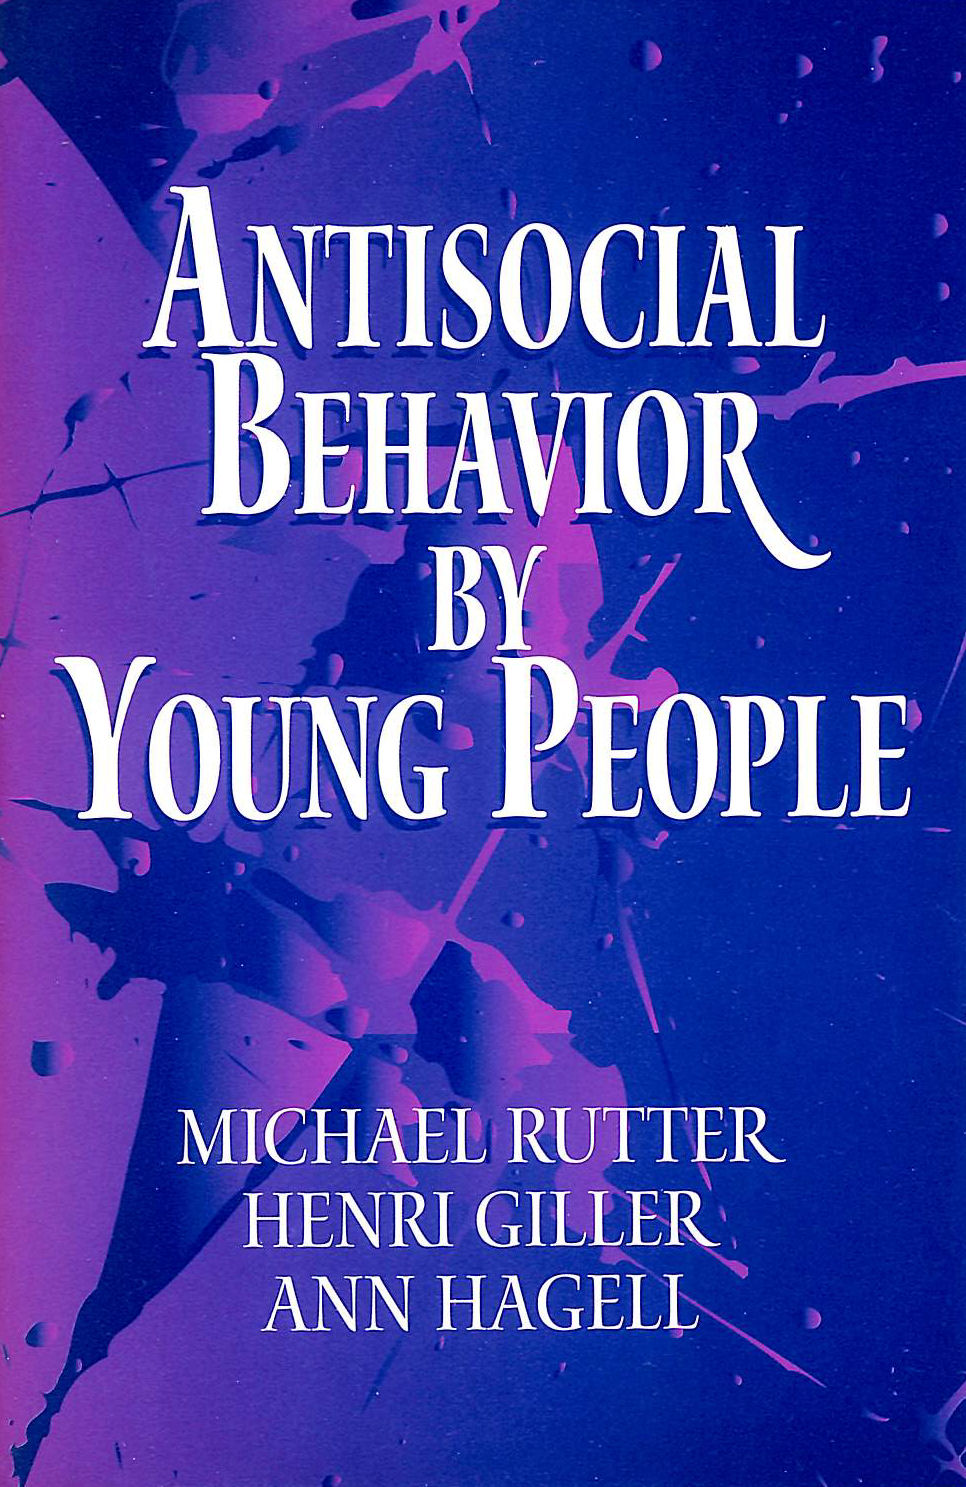 Image for Antisocial Behavior by Young People: A Major New Review